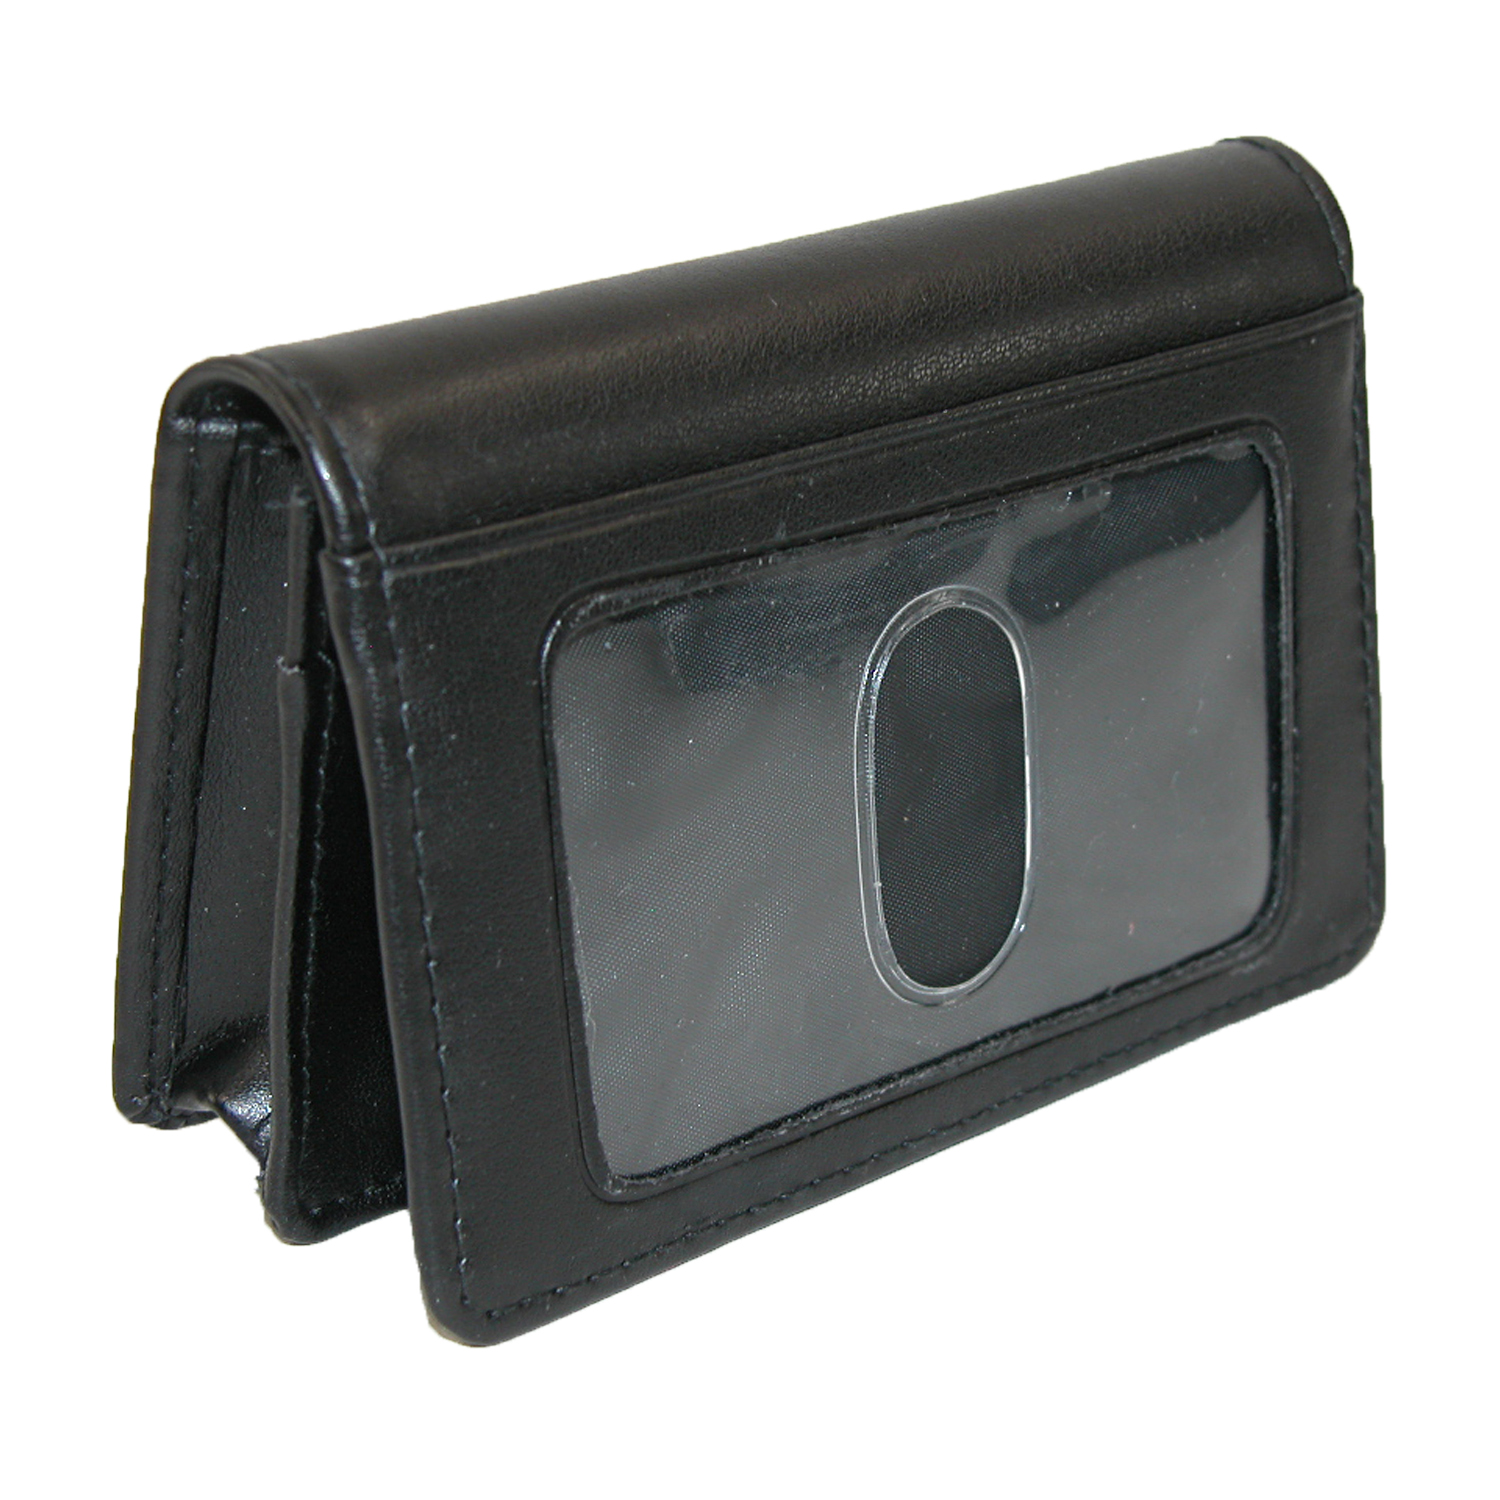 Buxton  Leather Business Card Holder with ID Window